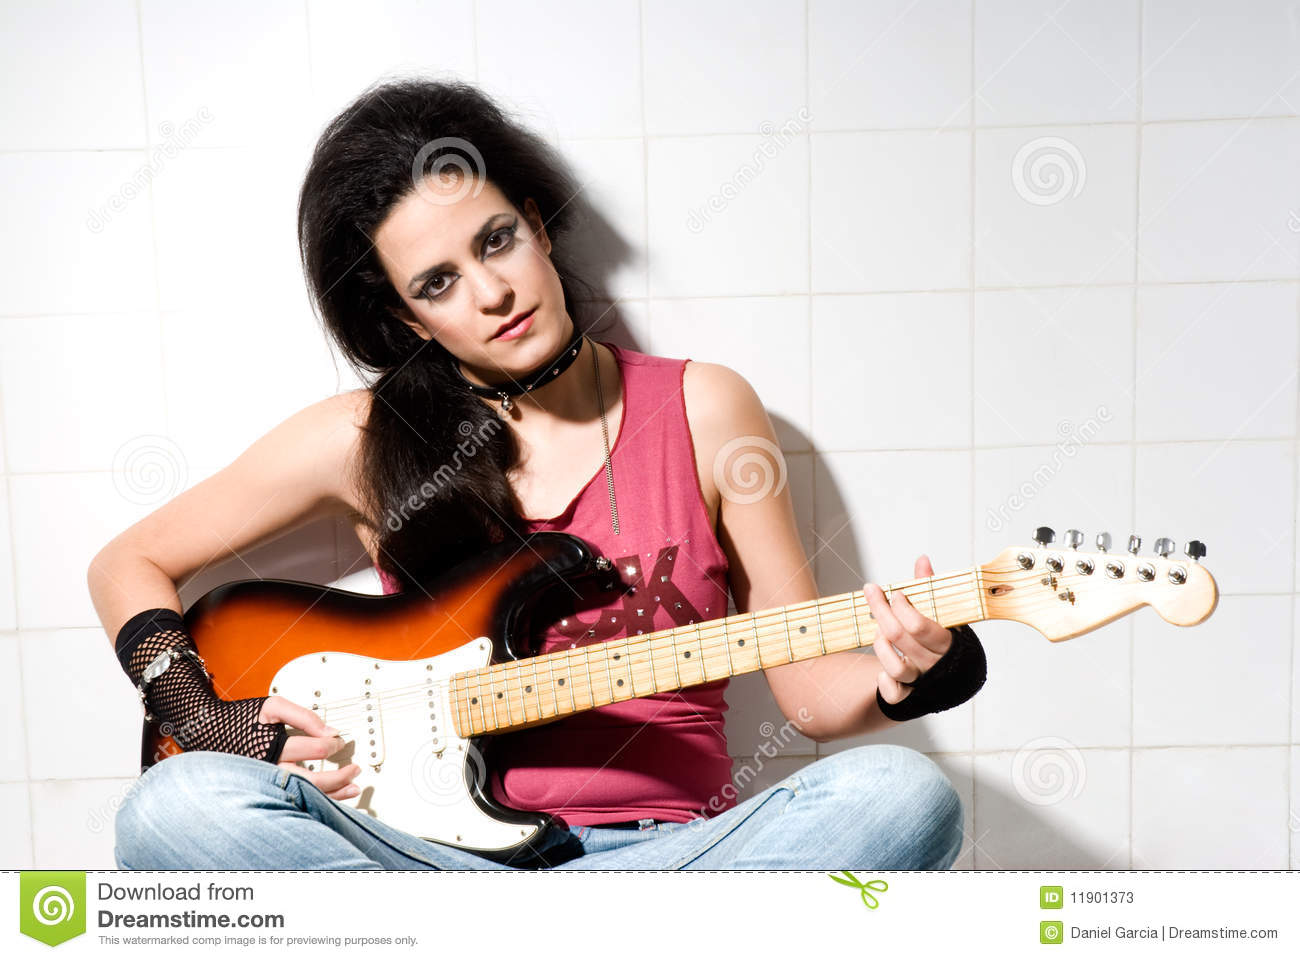 Female playing electric guitar